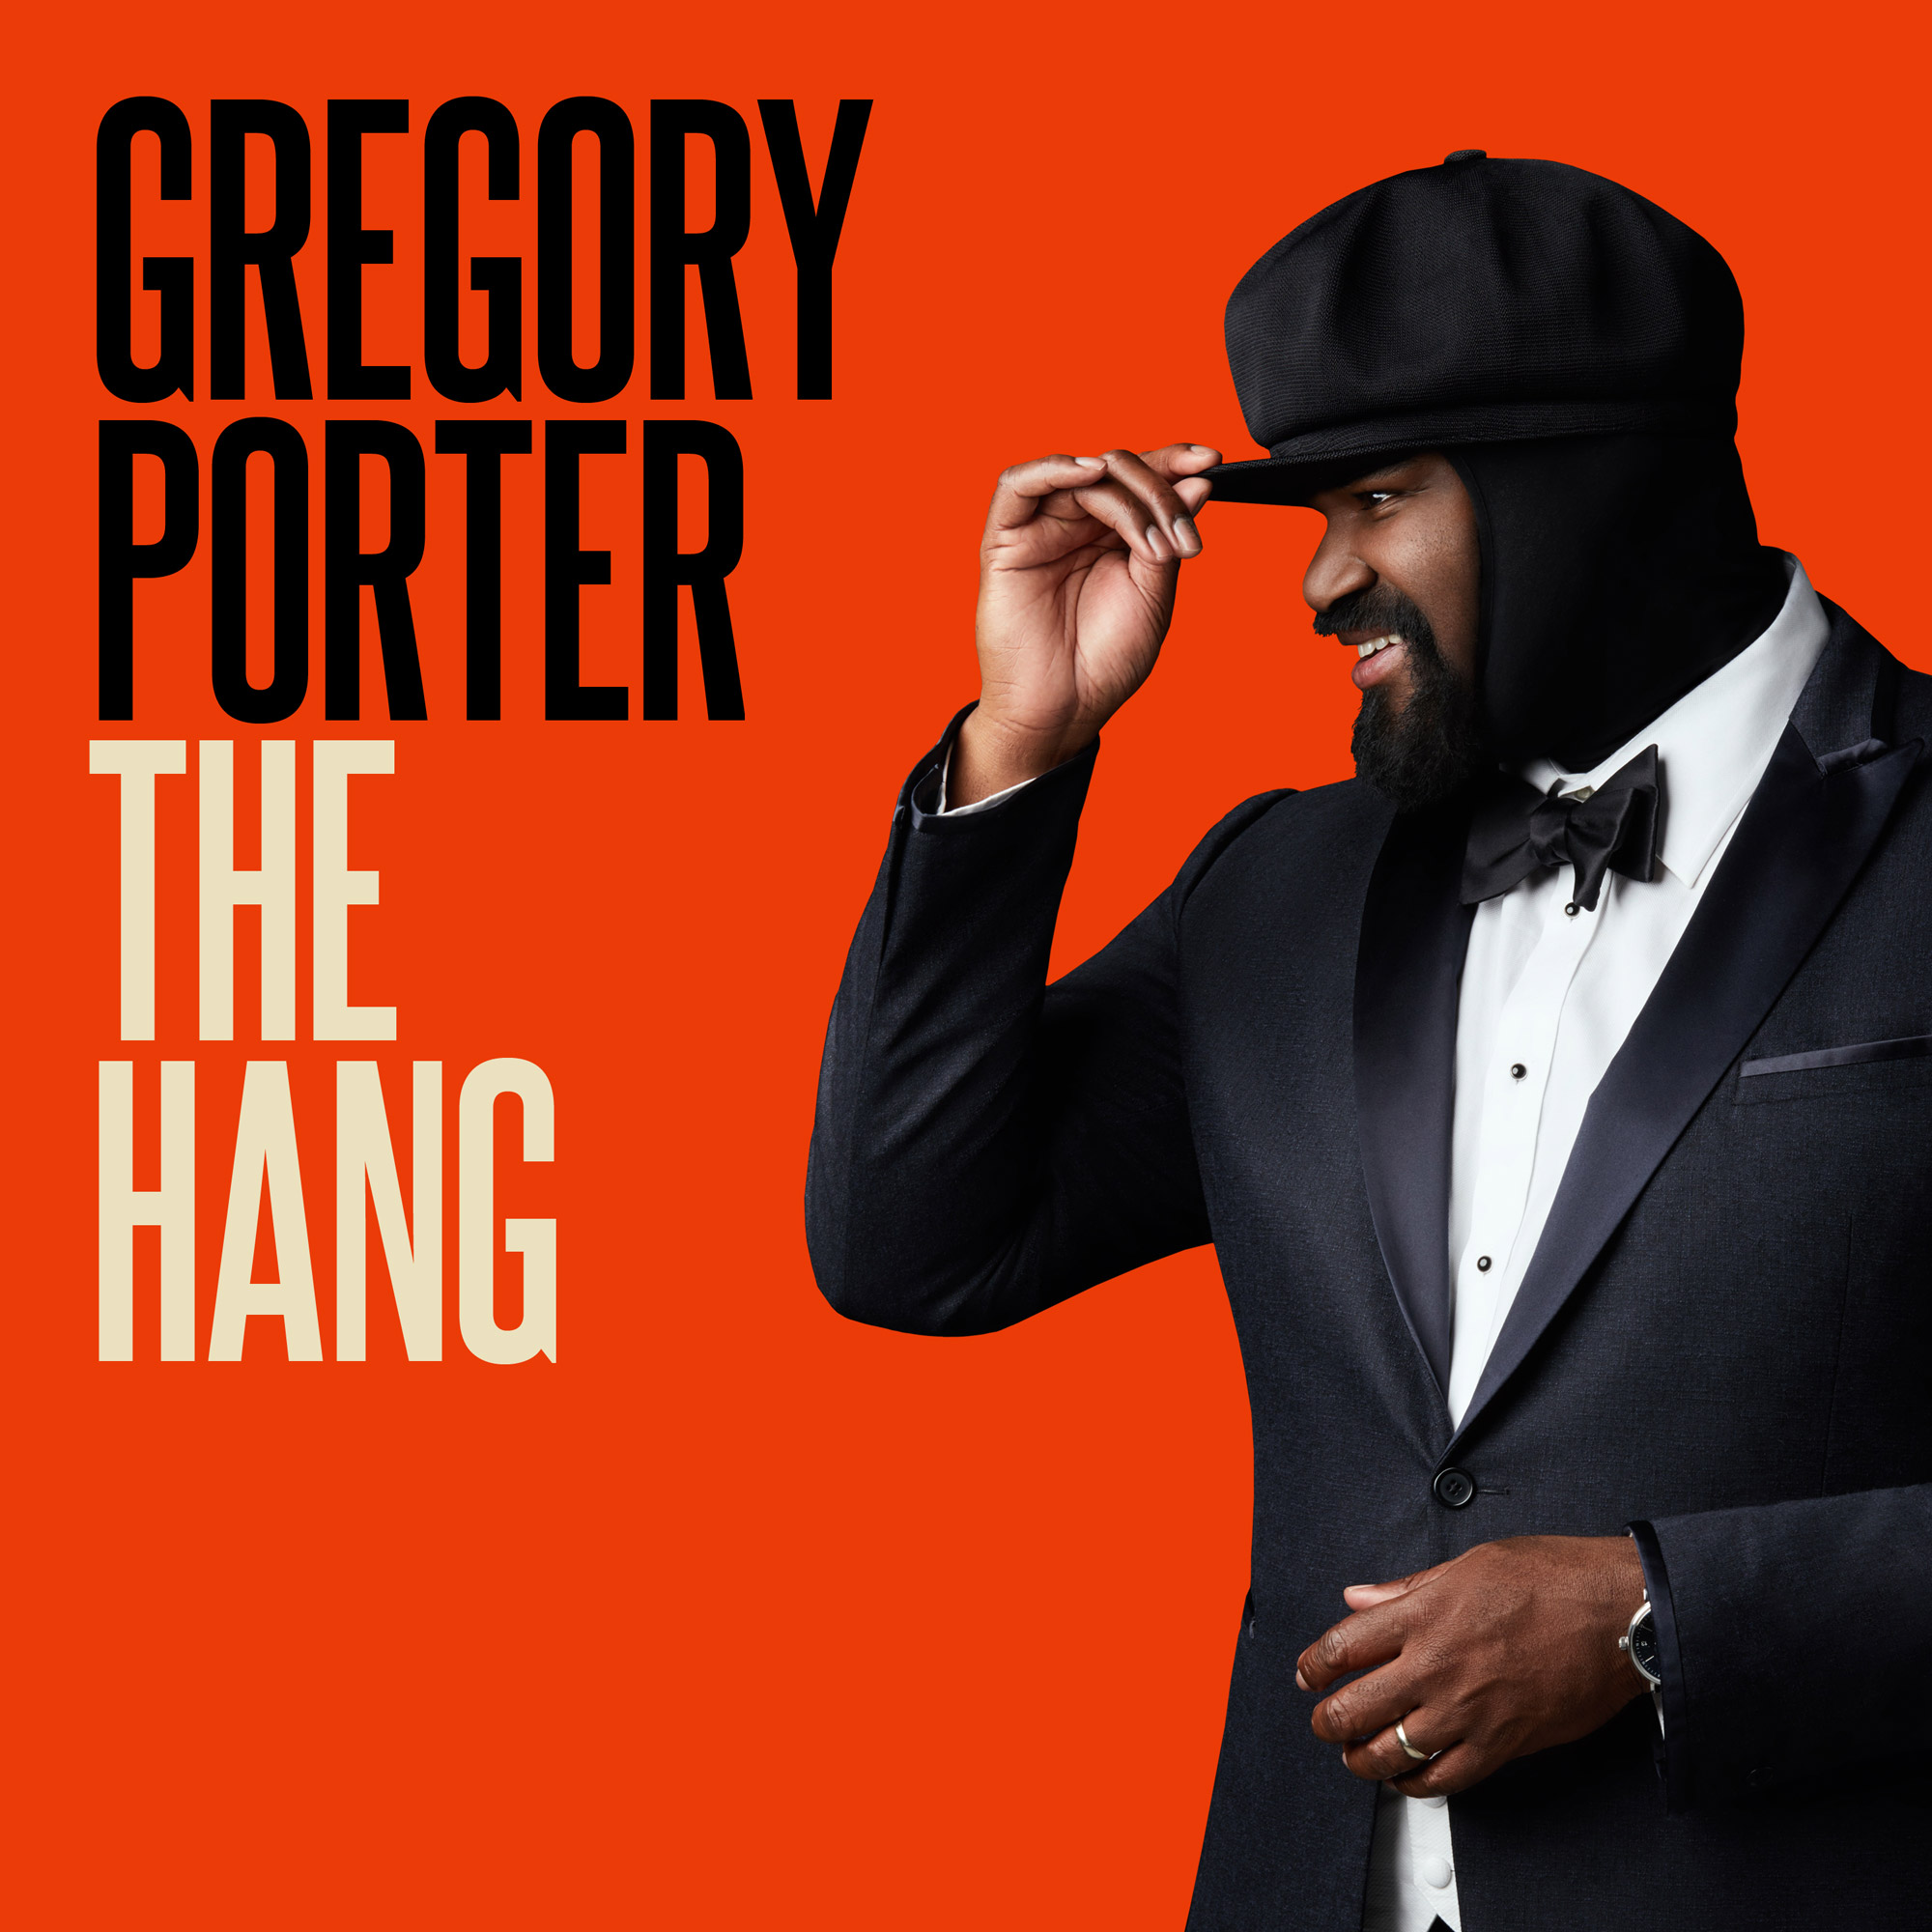 Gregory Porter's podcast The Hang